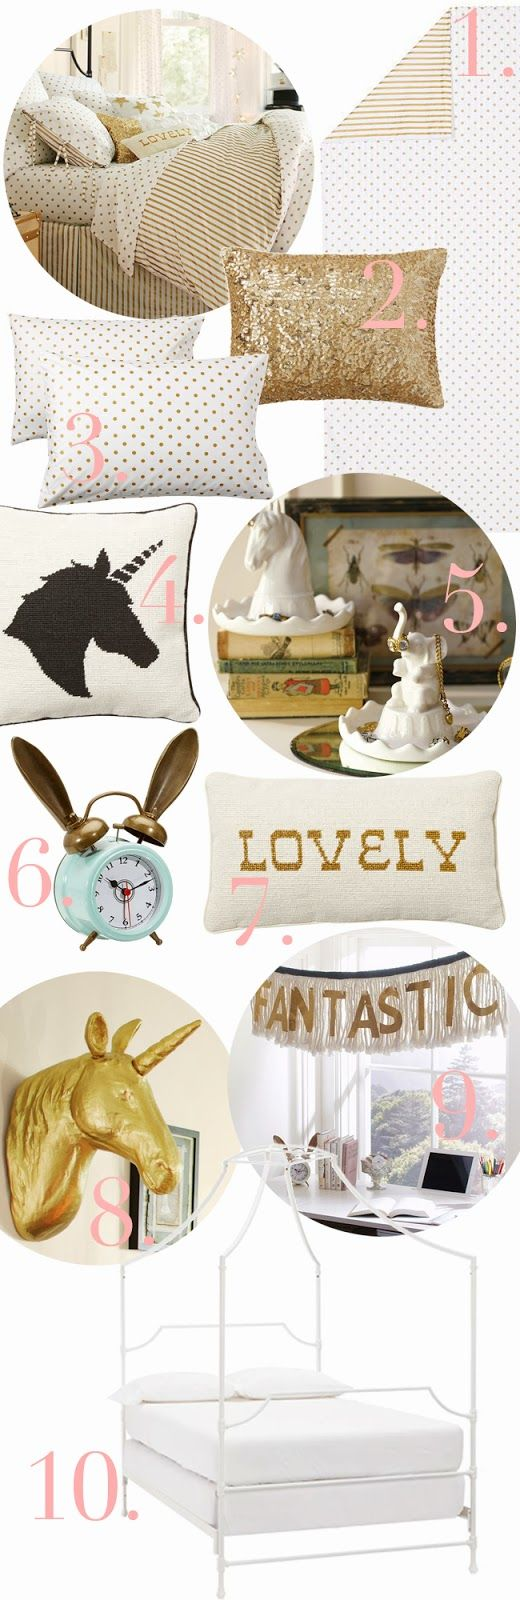 Sunday Shopping: Cuddle Up // Emily & Meritt x @Pottery Barn Teen Collection